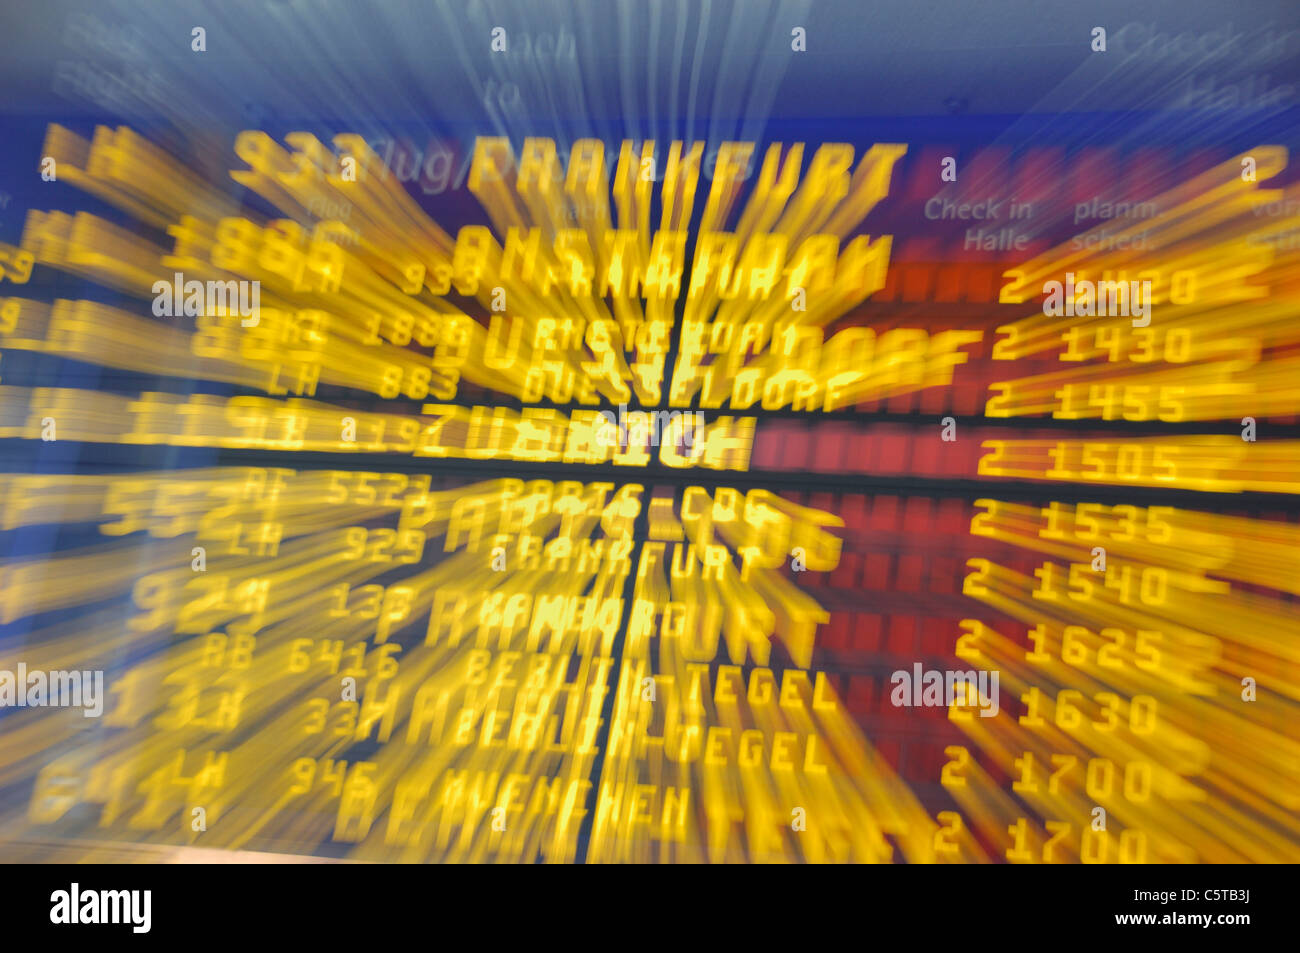 Germany, Airport, Annunciator panel, blurred, Zoom - Stock Image